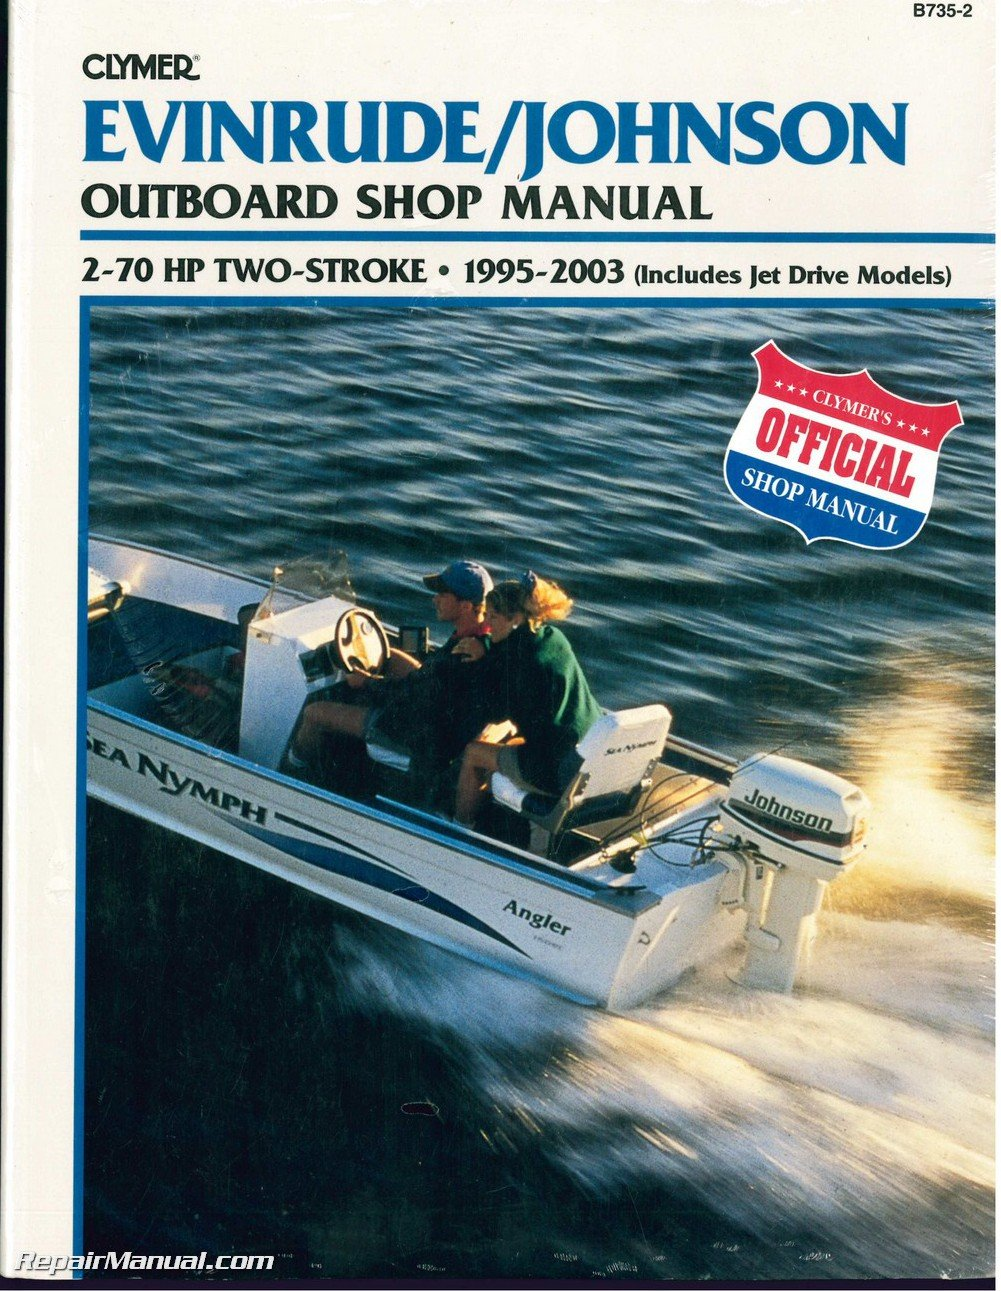 NOS-B735-2 1995-2003 Evinrude/Johnson Outboard Shop Manual, 2-70 HP Two- Stroke (includes Jet Drives) by Clymer: Manufacturer: Amazon.com: Books